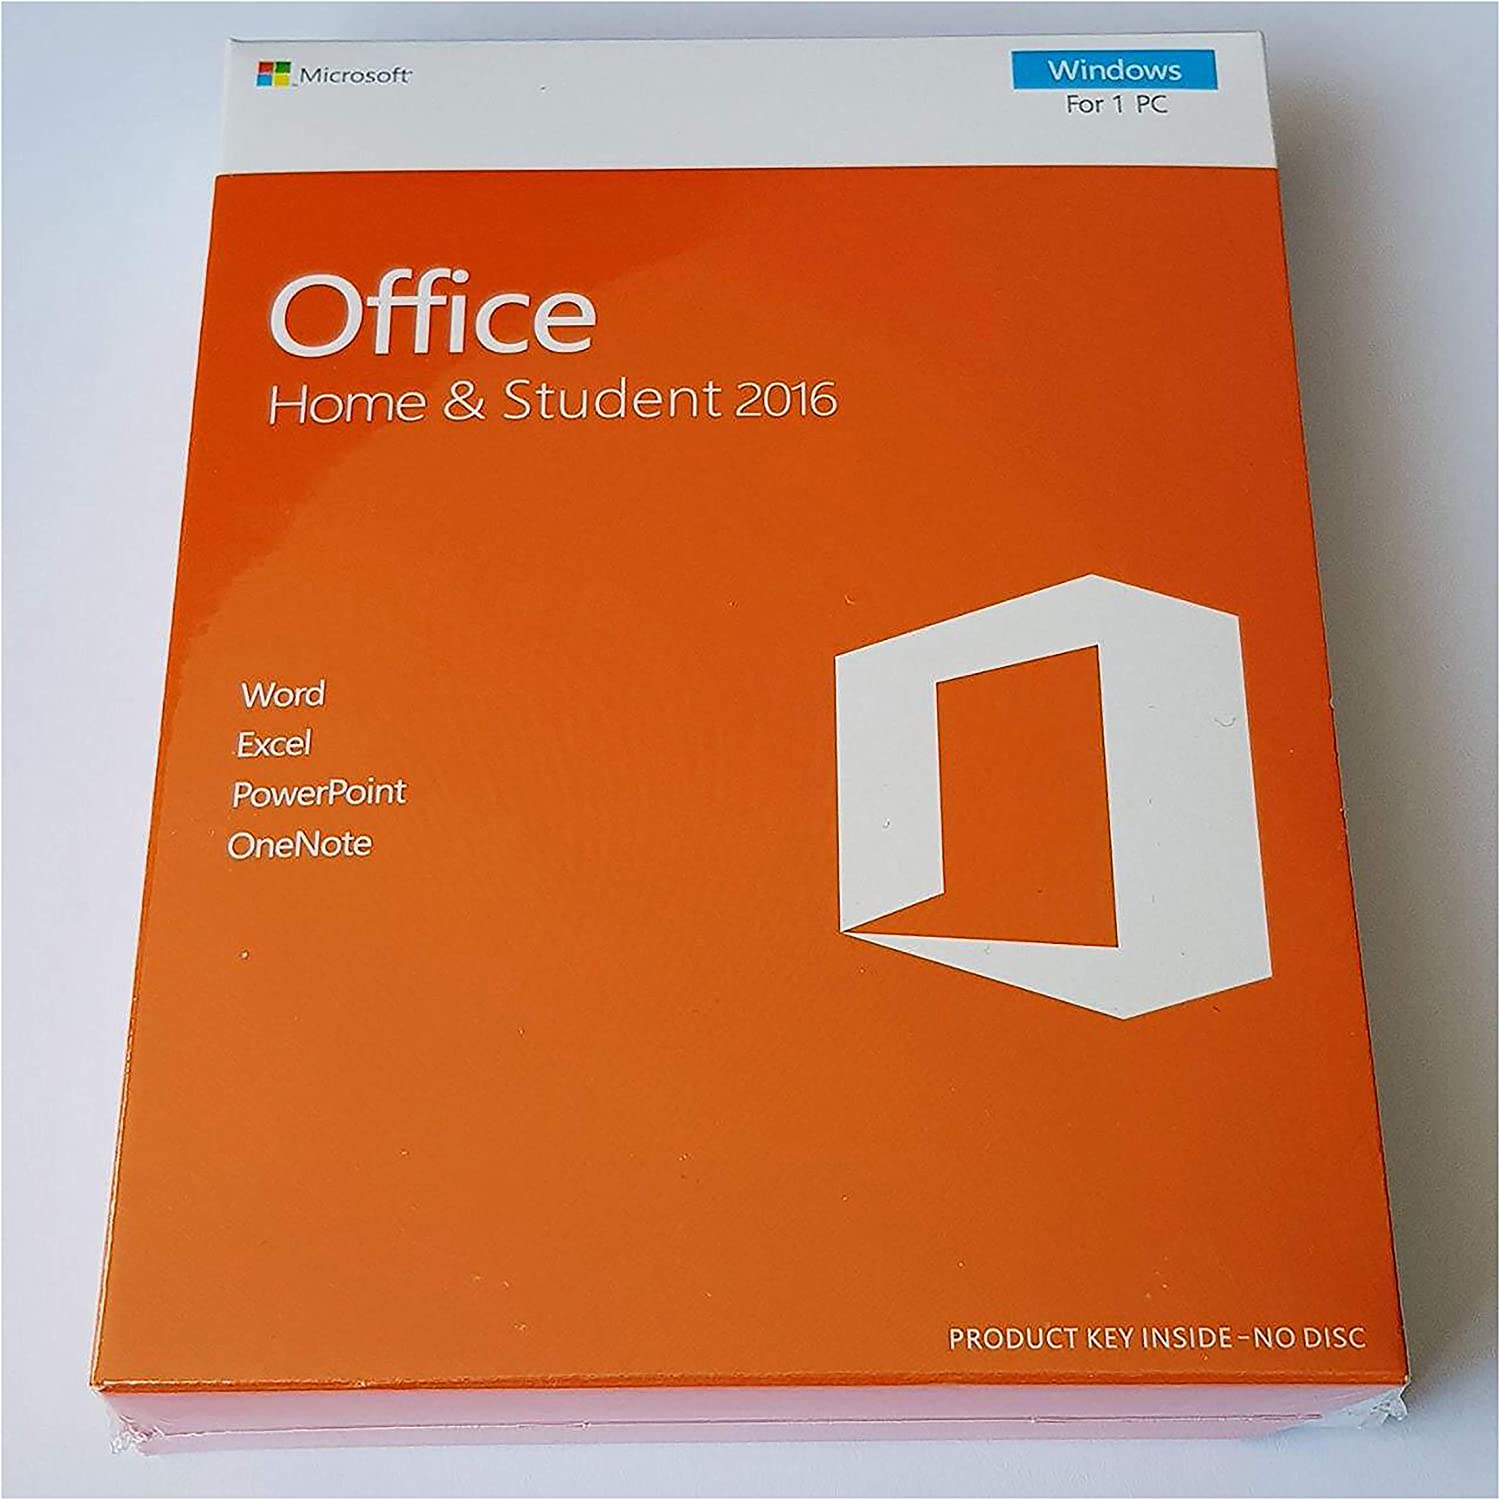 Office Home and Student 2016 License Key Card in Box, 1PC, Multilingual